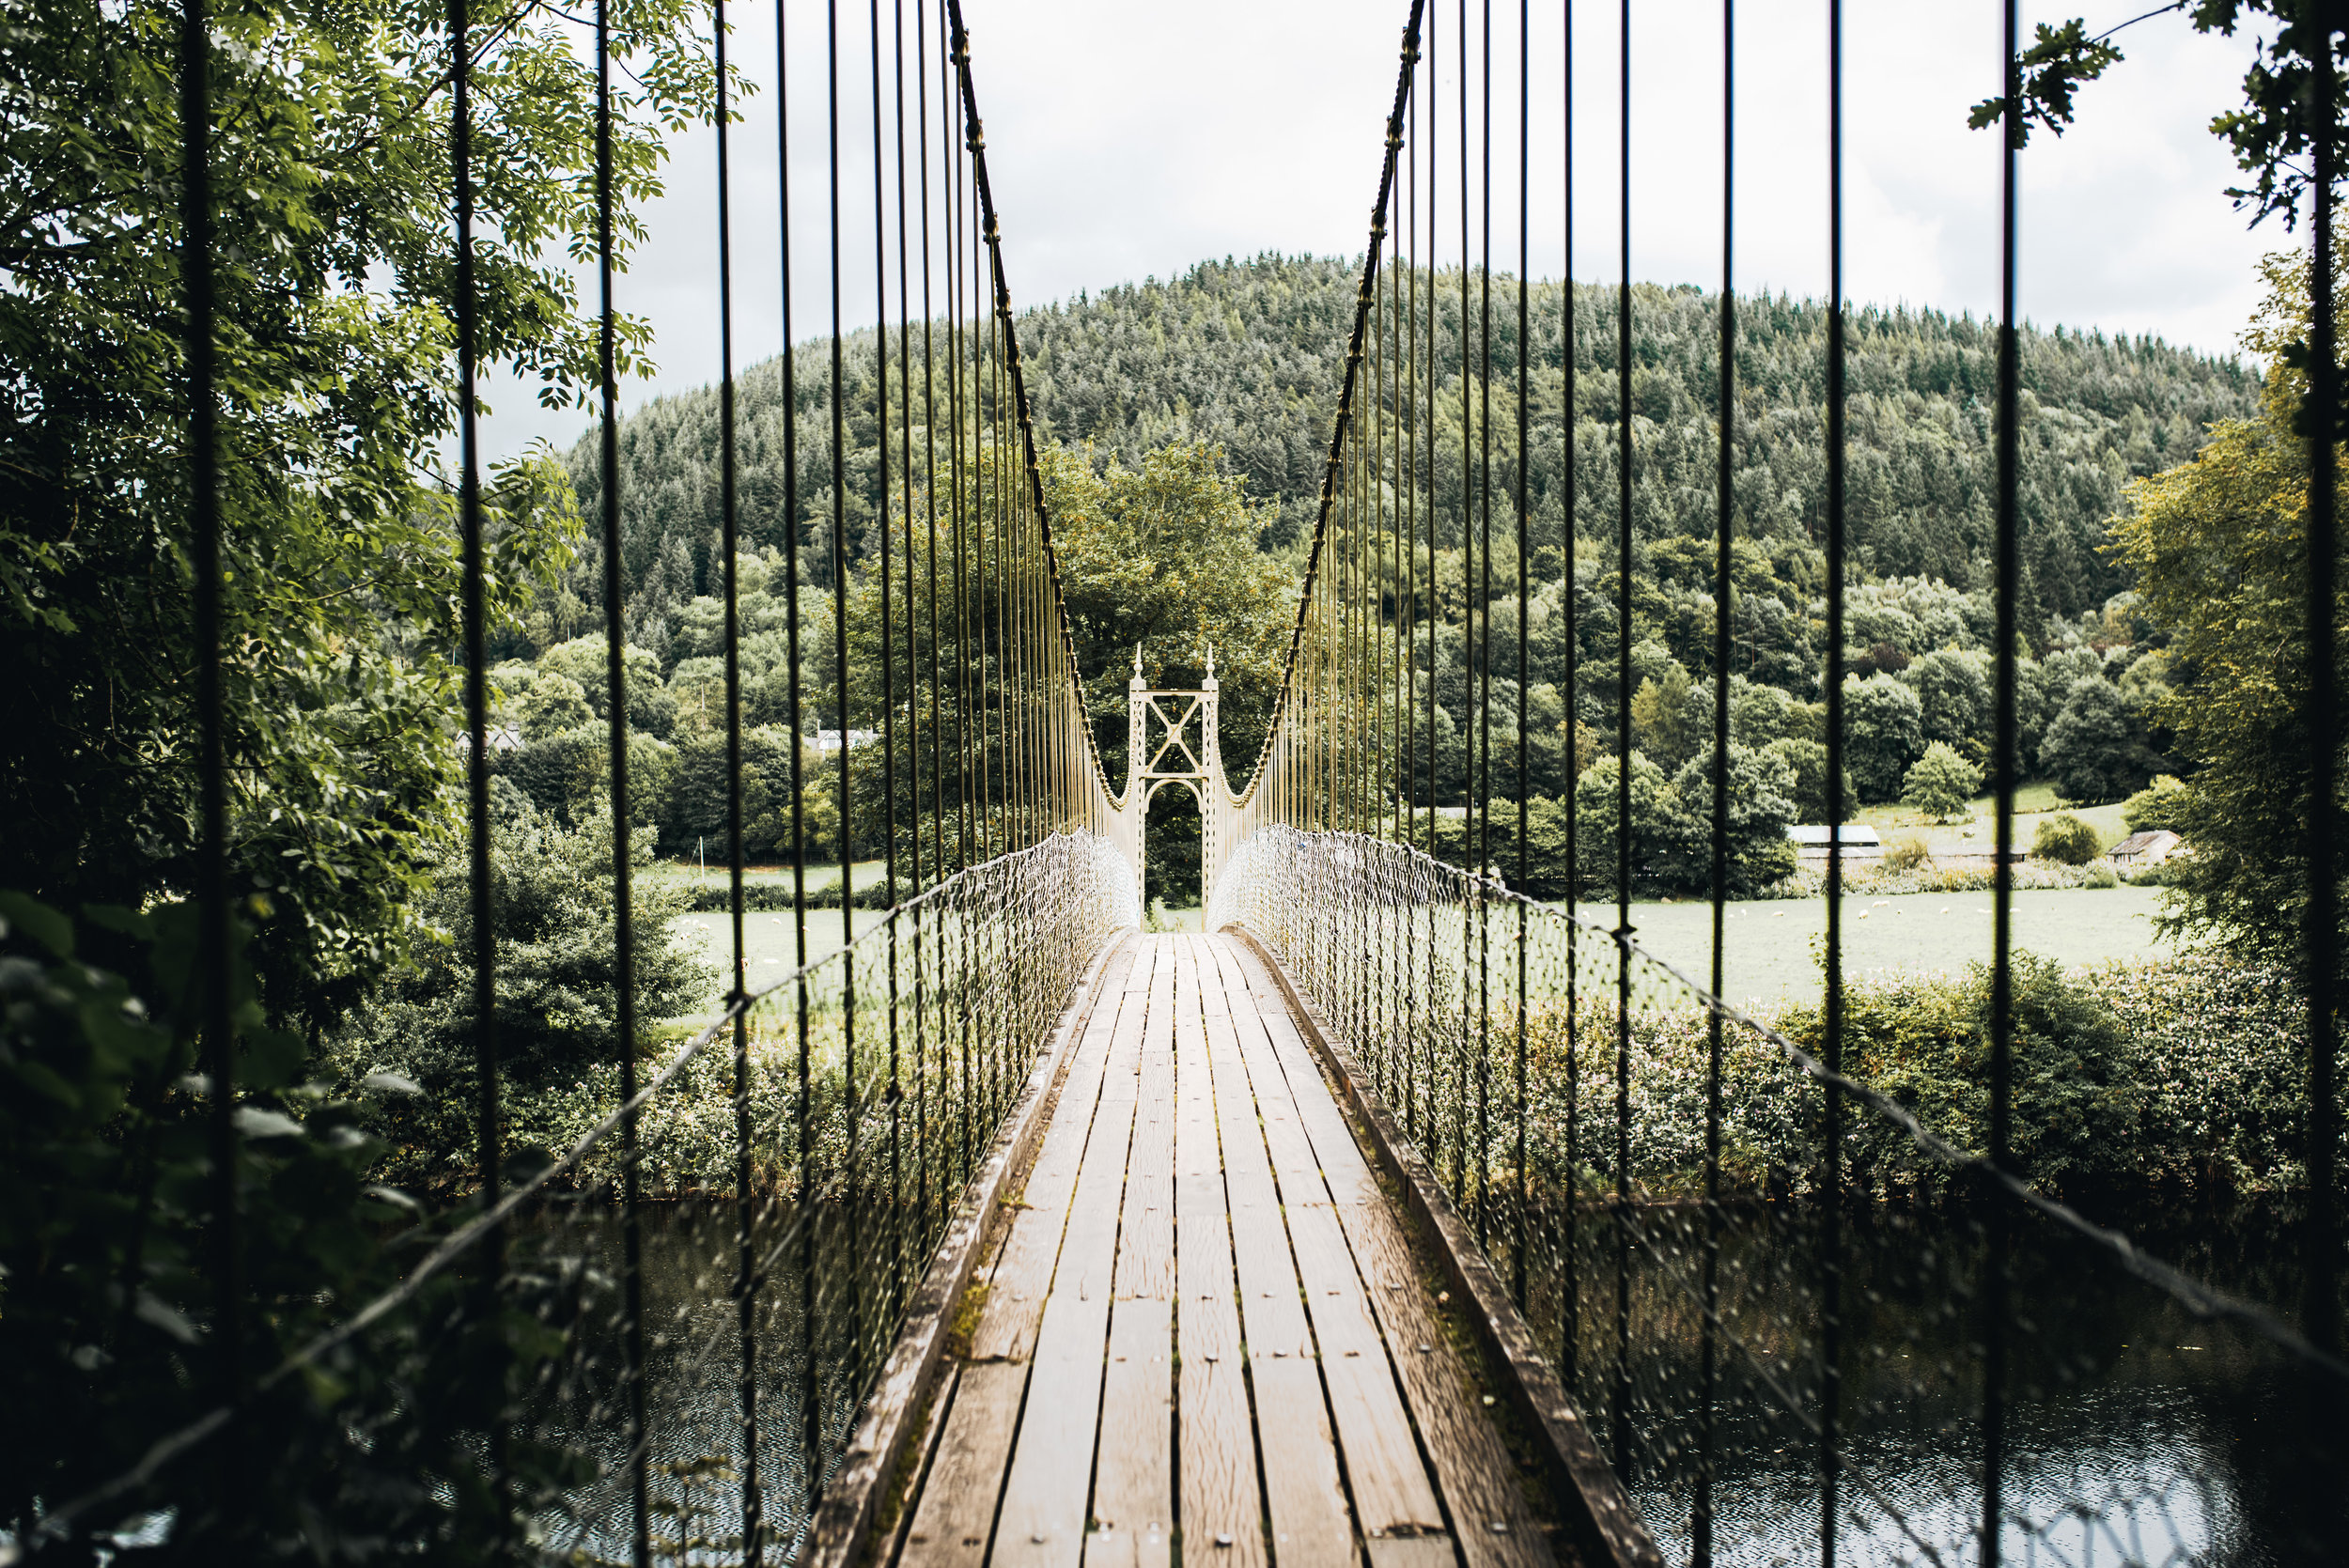 Suspension Bridge in Betws Y Coed